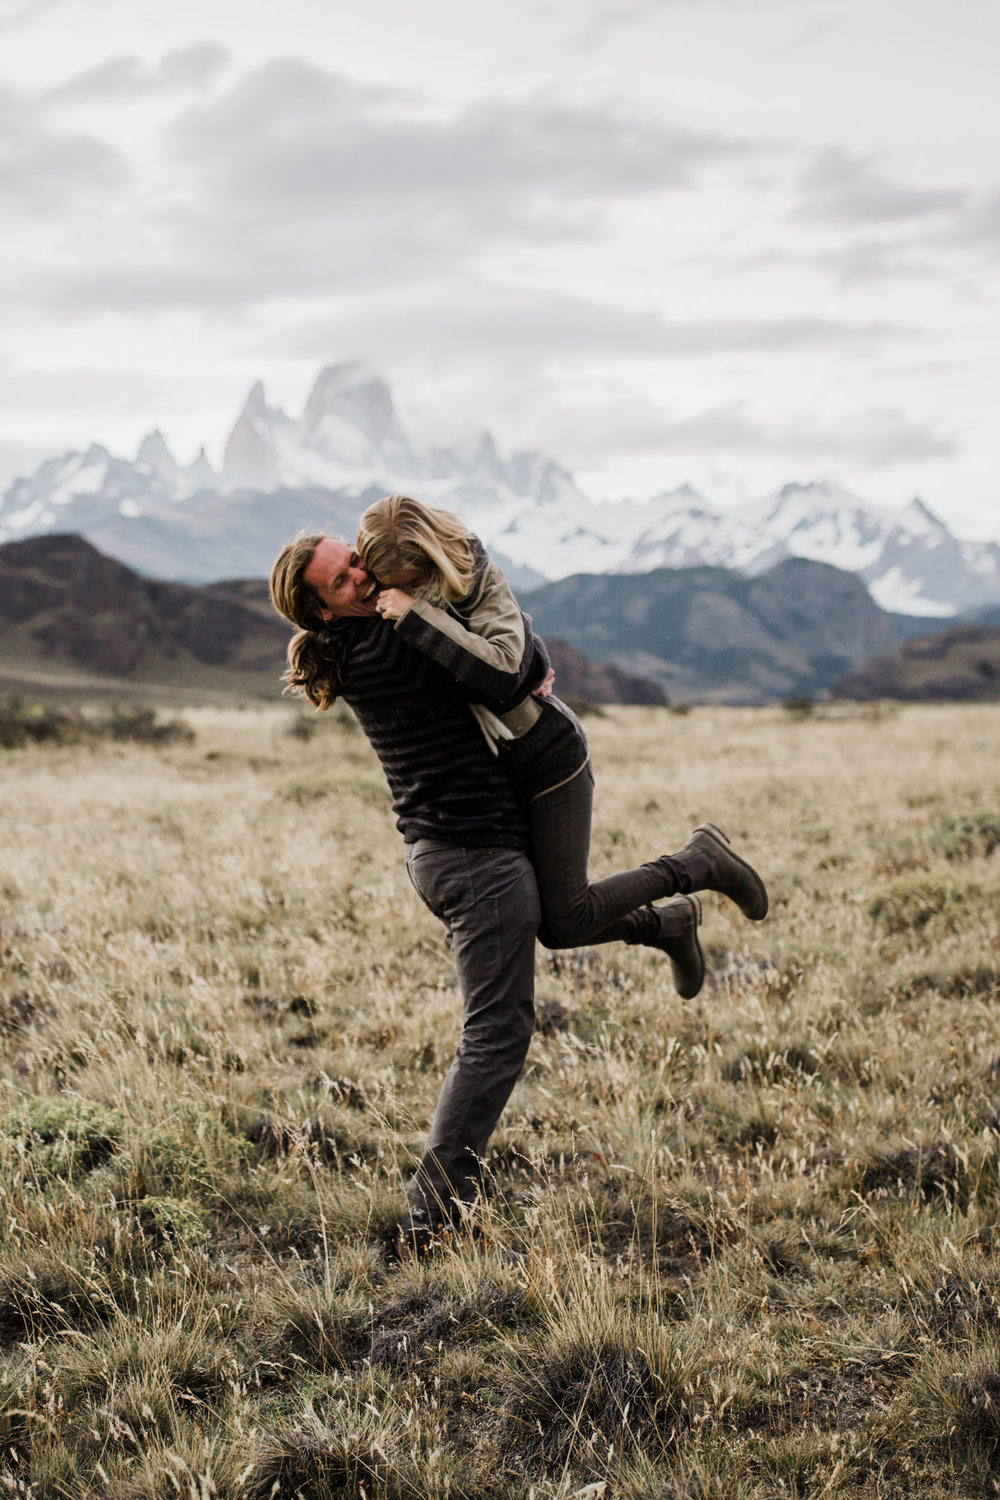 patagonia would be an awesome place for an elopement!